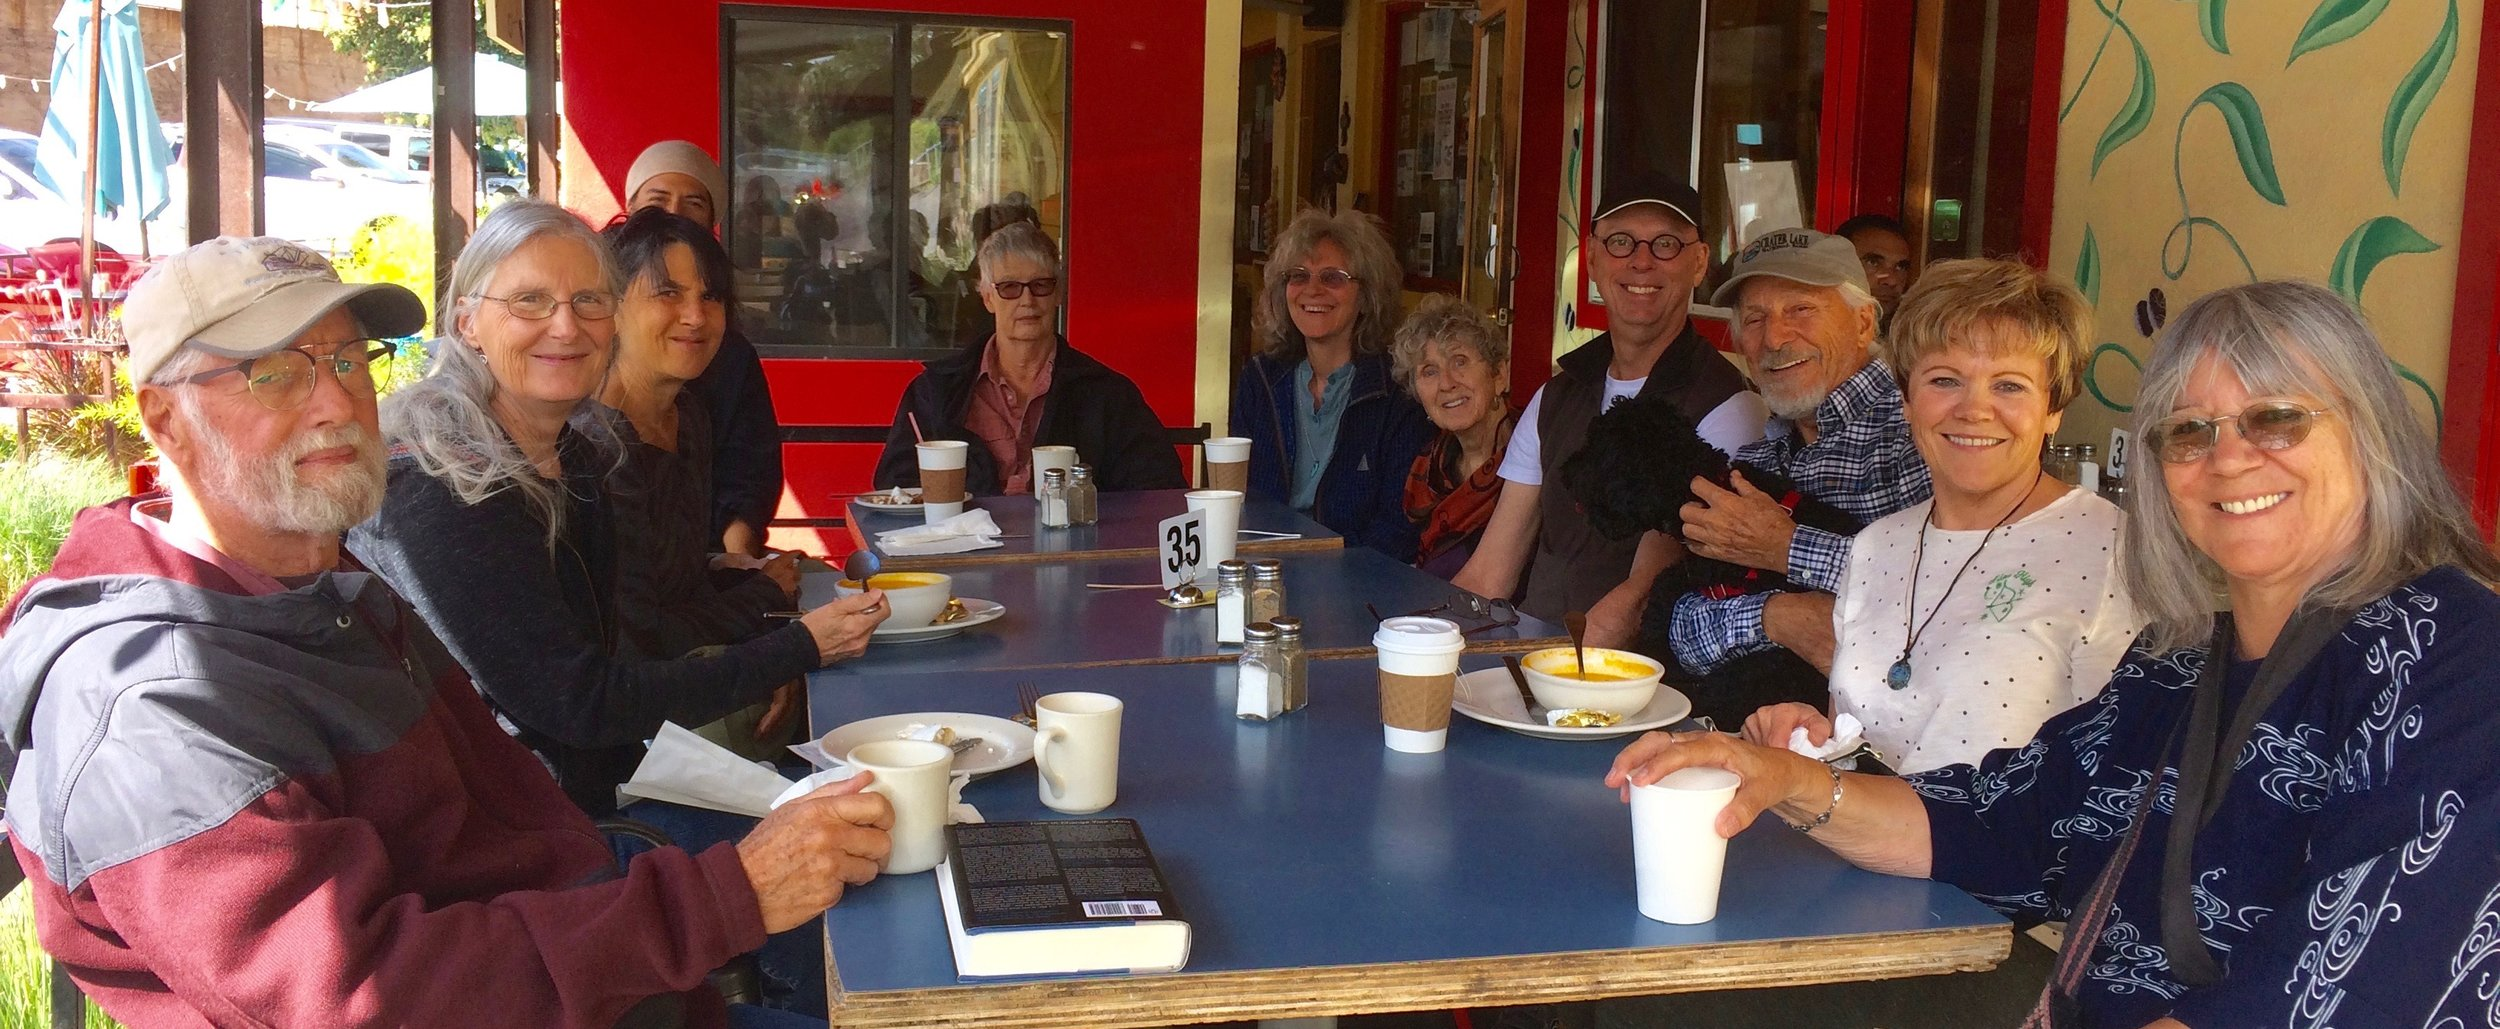 The community enjoying coffee together after Sunday morning meditation practice. Photos by Larry Milam.